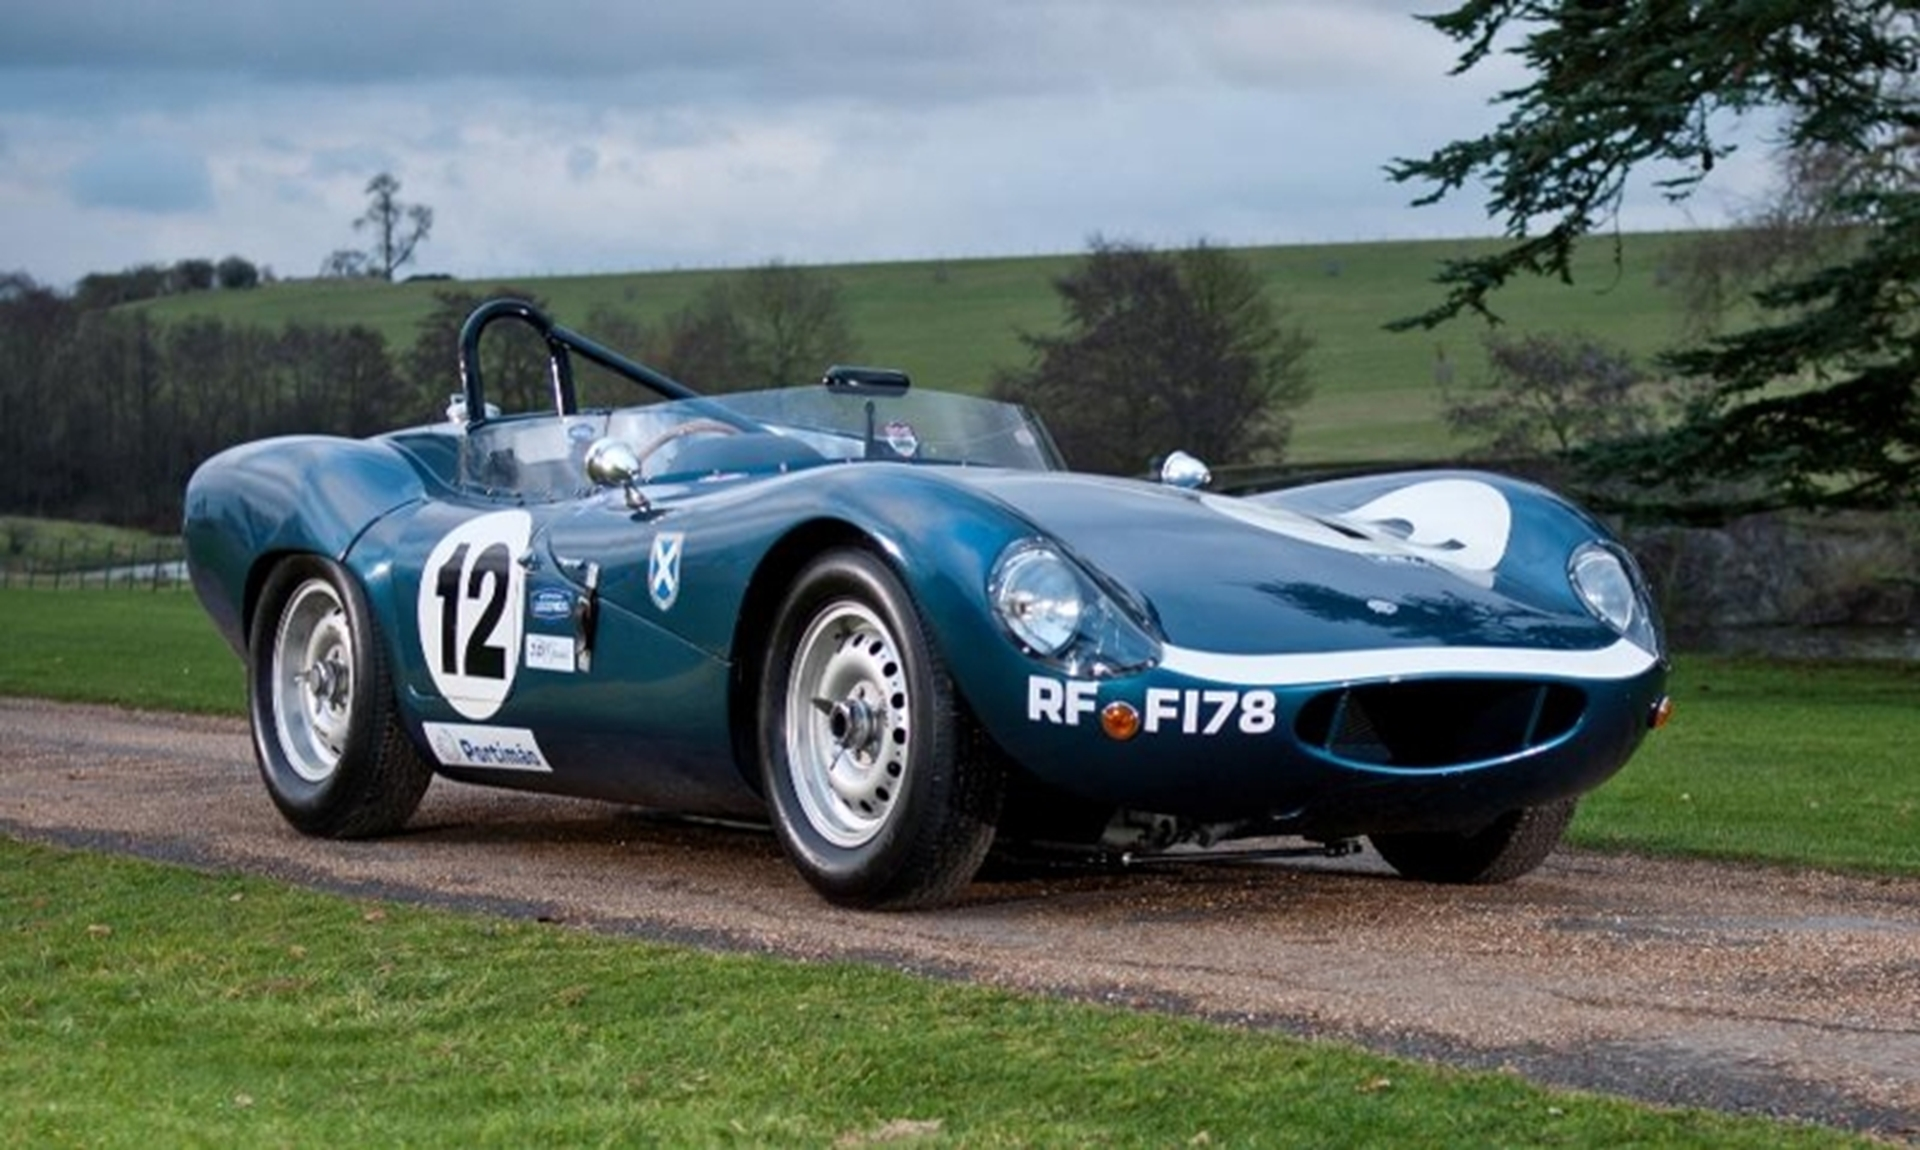 180 LOTS CONFIRMED FOR RACE RETRO AND CLASSIC CAR SALE